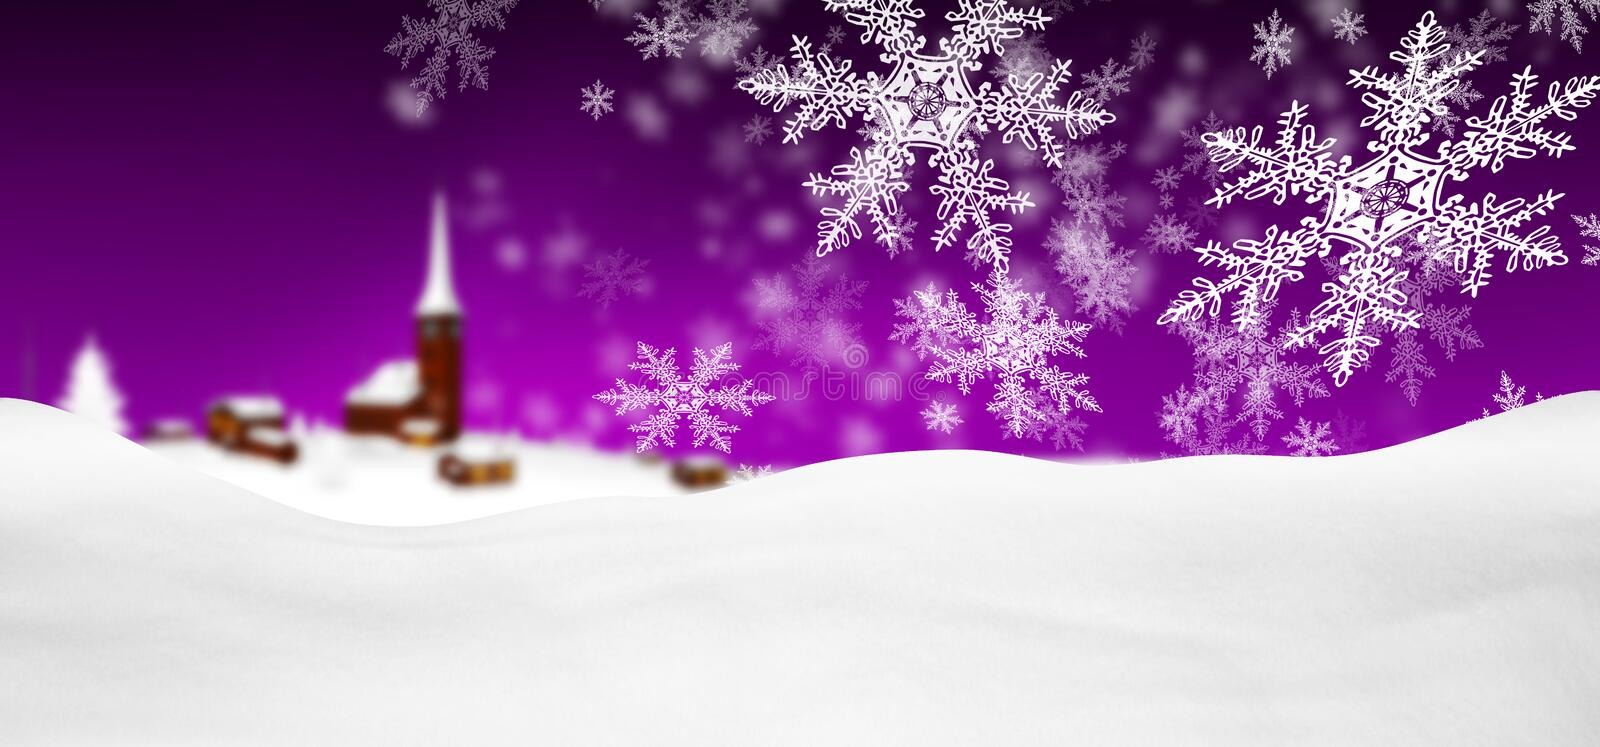 Abstract Violet Background Panorama Winter Landscape with Fallin vector illustration